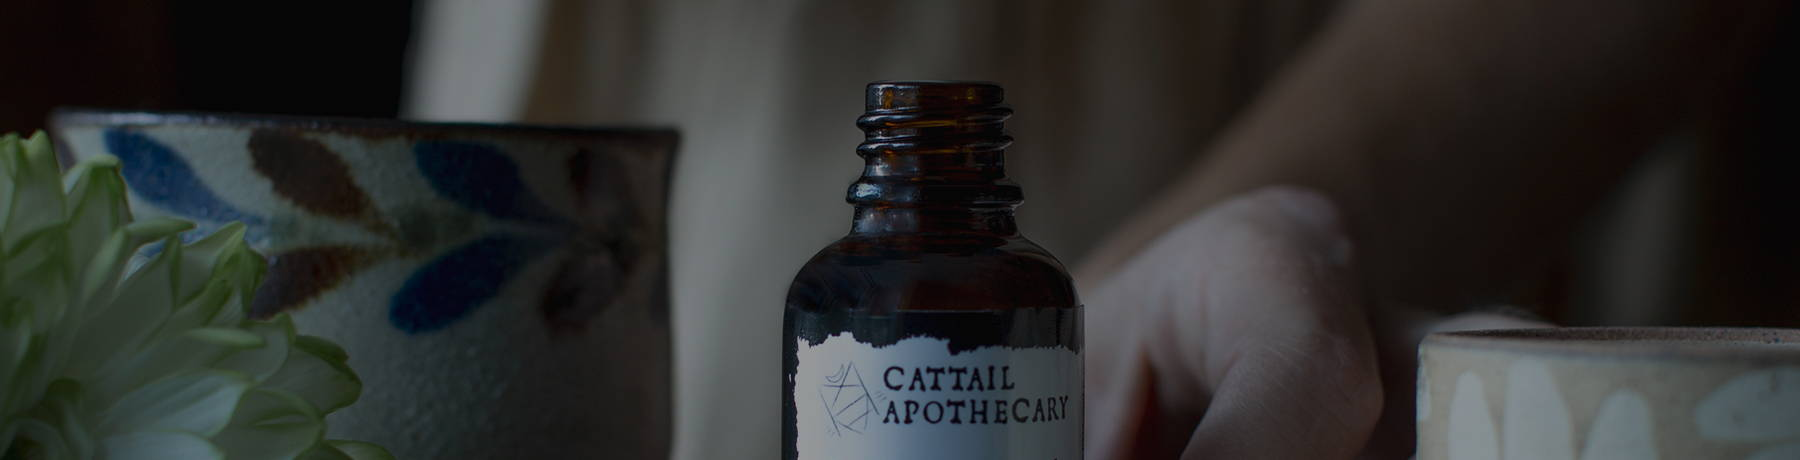 Cattail Apothecary Stinging Nettle Tincture